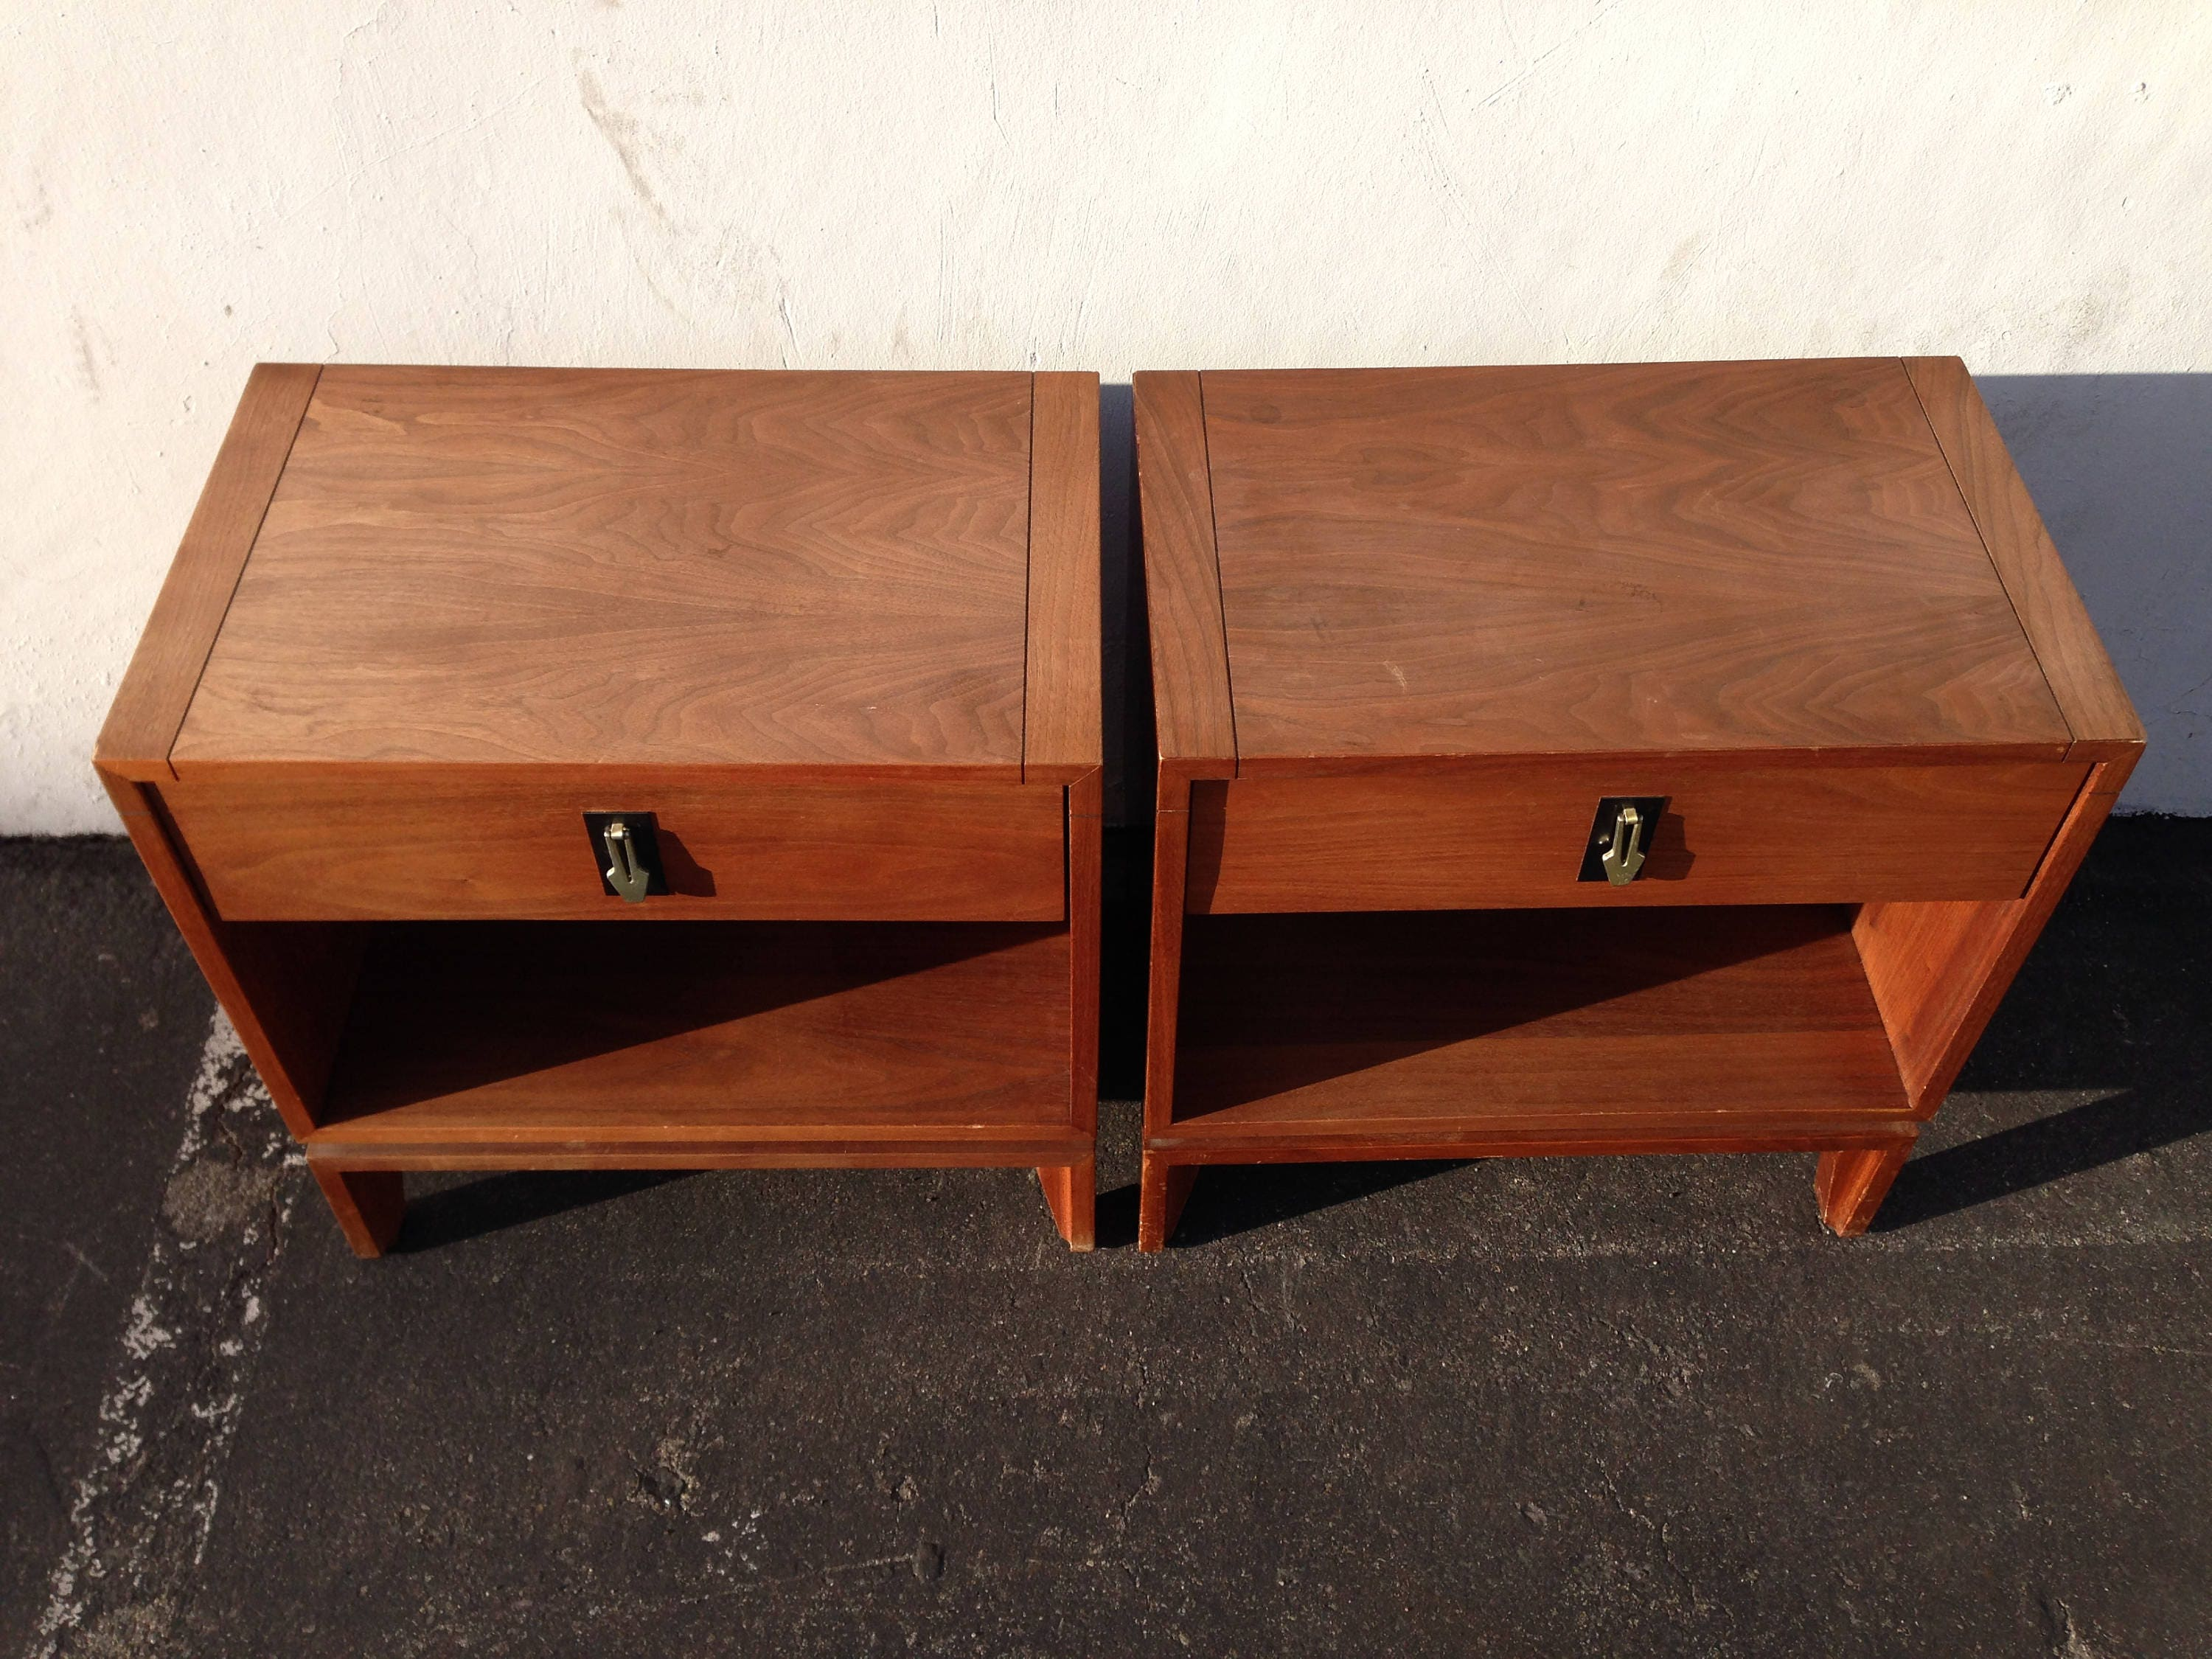 Charmant Pair Of Nightstands Brown Saltman Furniture Bedside Tables Set Mid Century  Modern Cabinet Credenza Storage Media Vintage Boho Chic Eames MCM